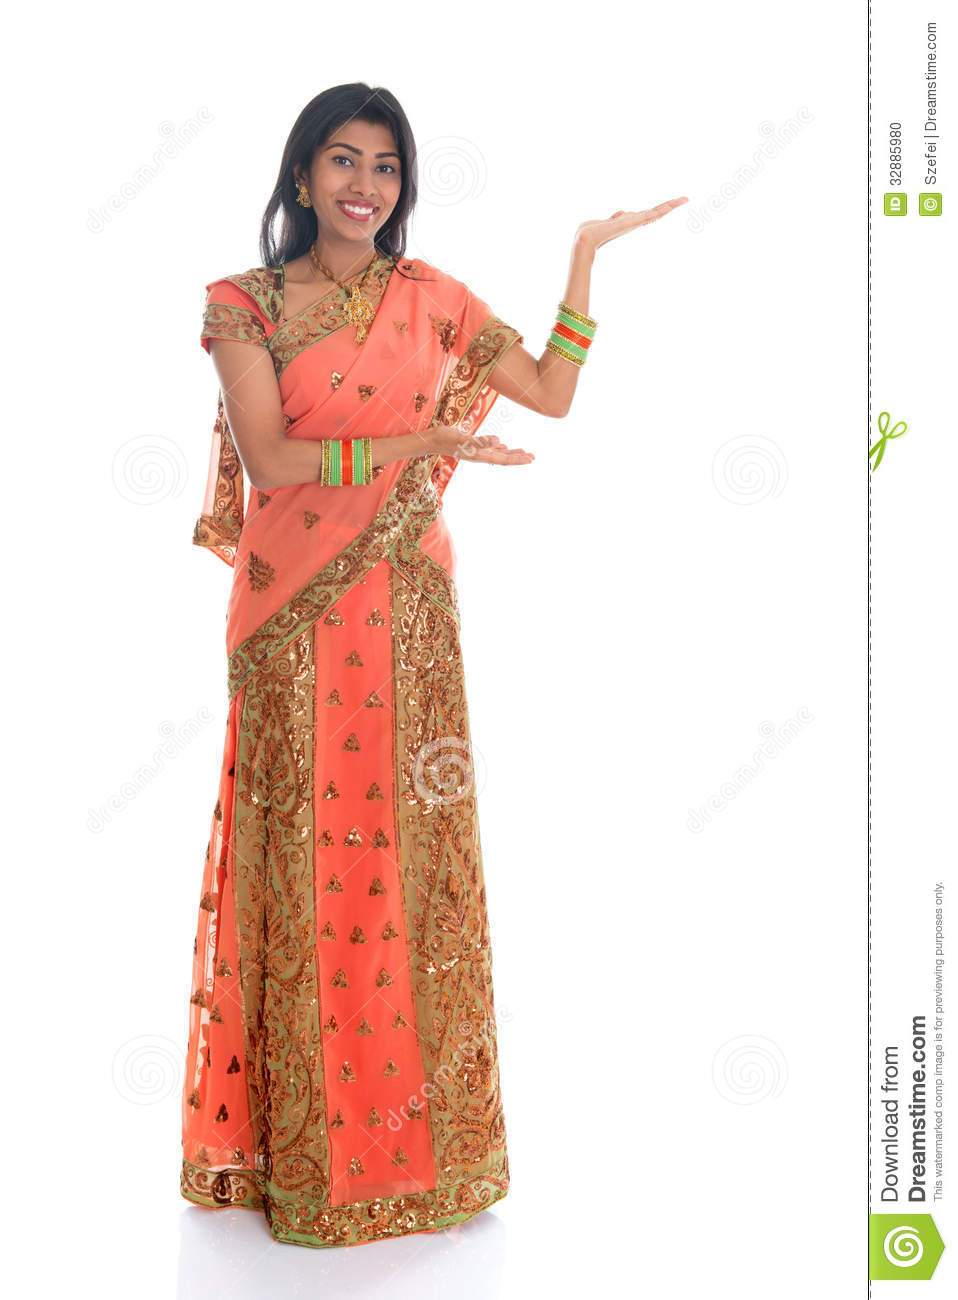 Asian indian clipart 6 » Clipart Portal.